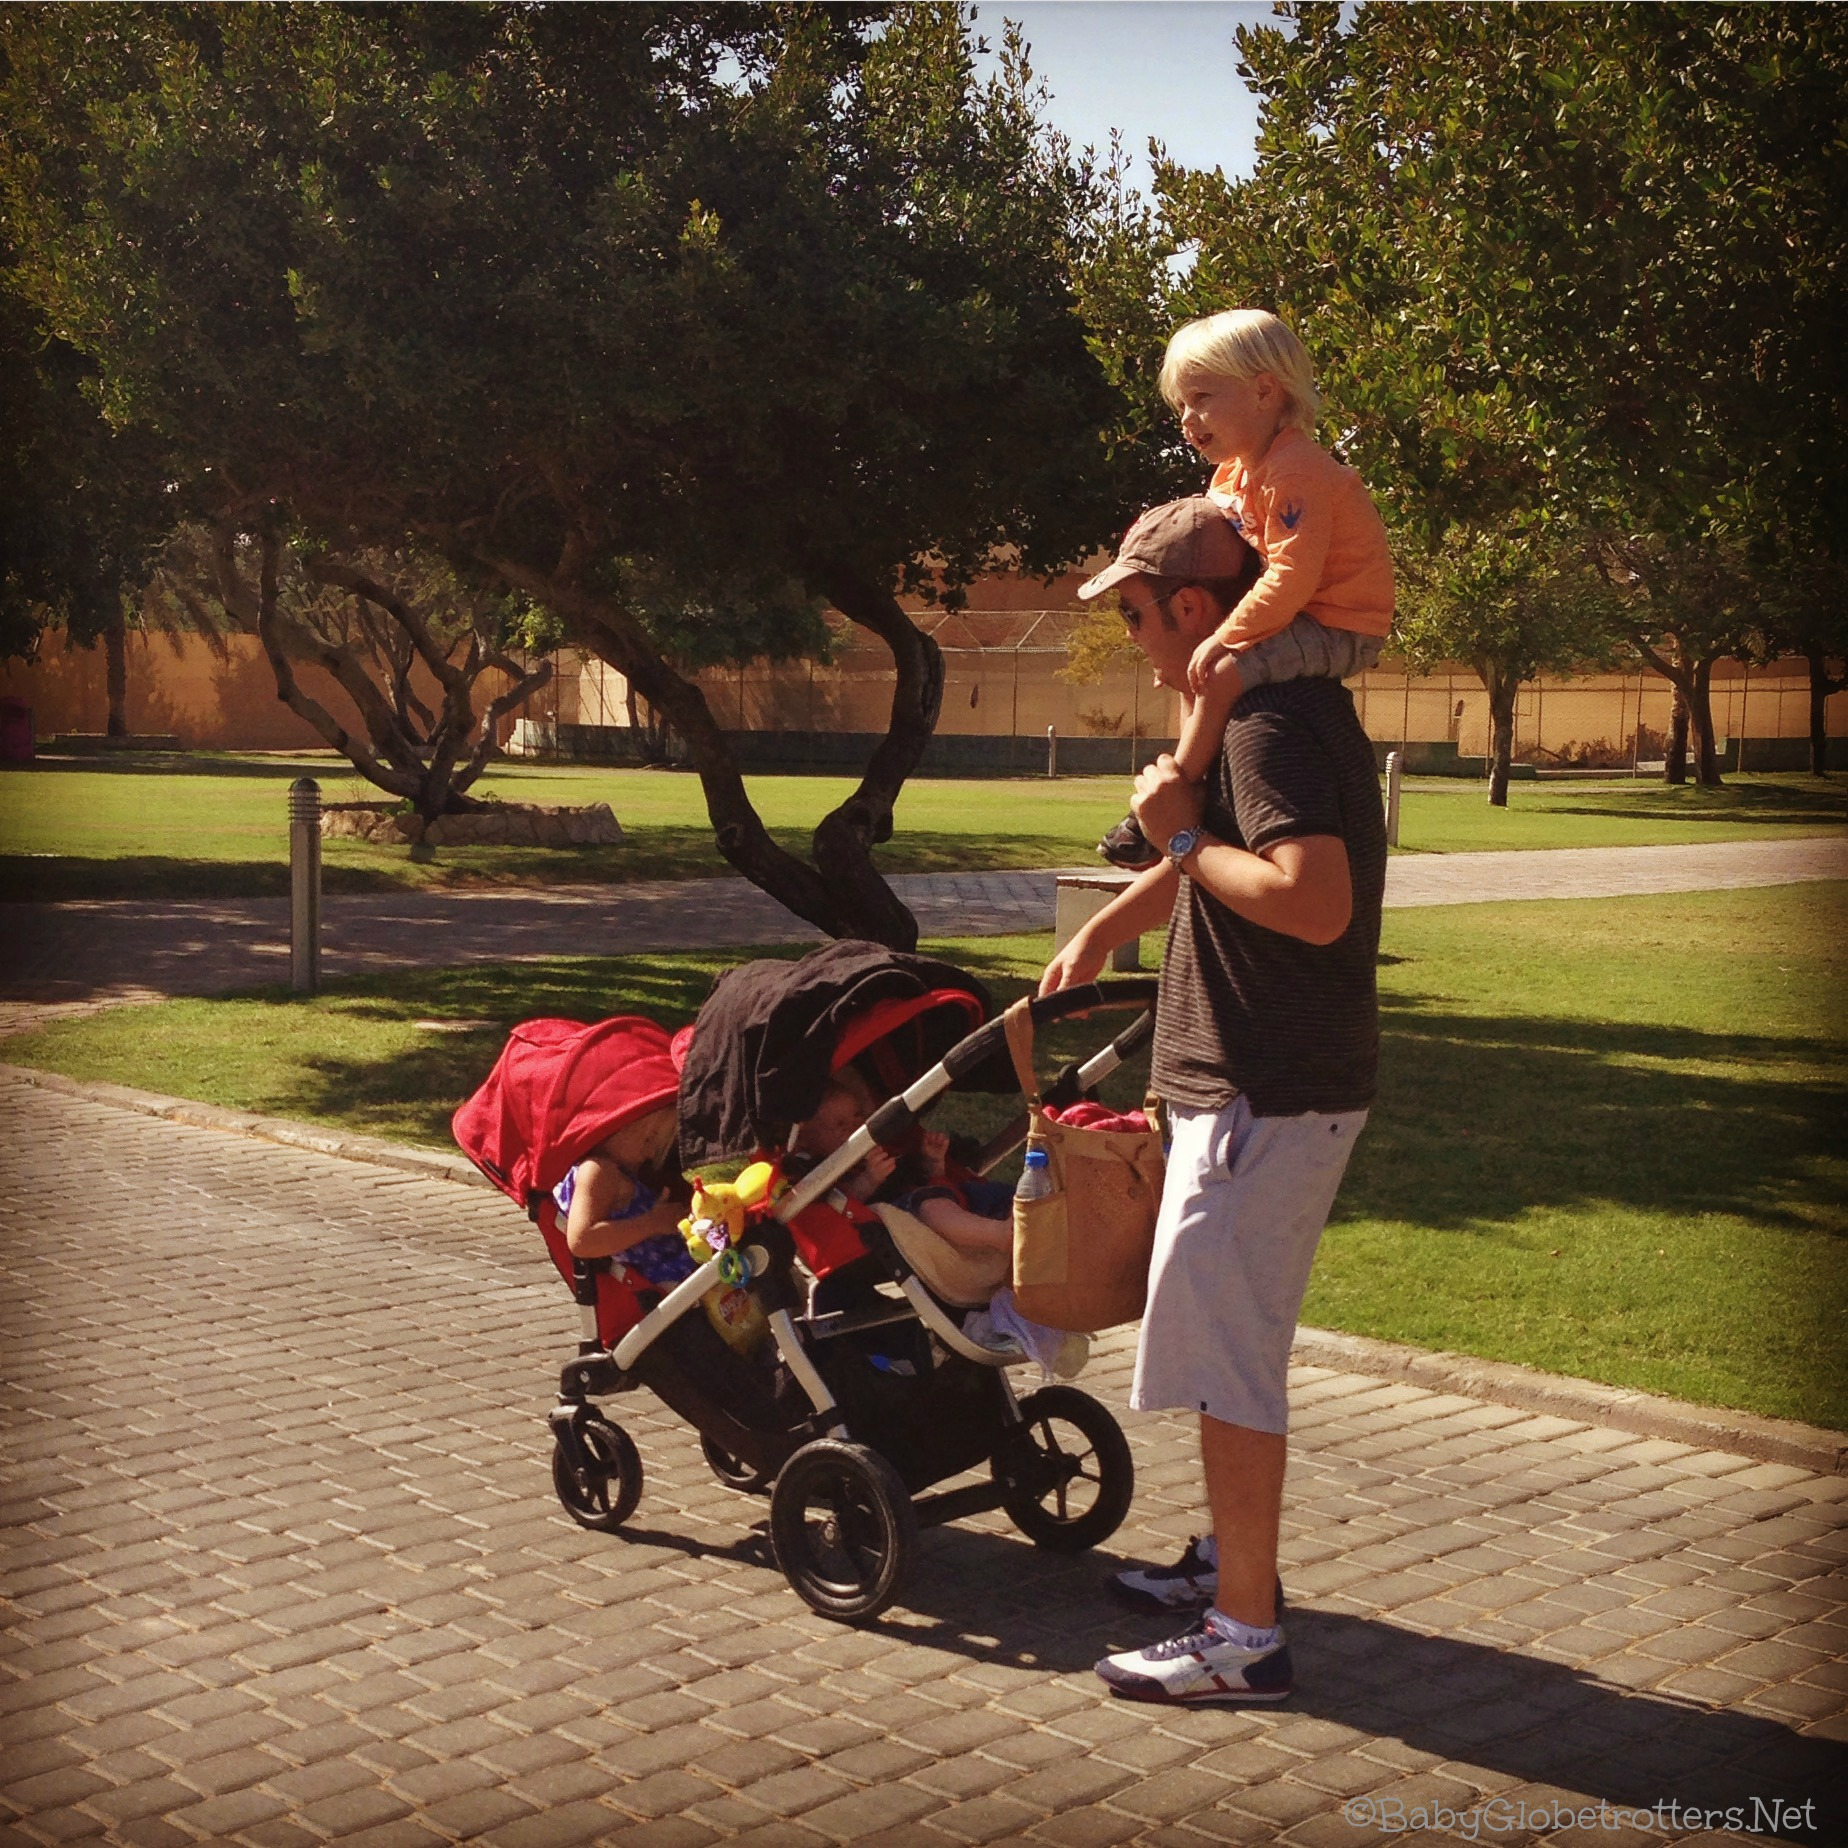 Selecting the perfect Pushchair | Travel Advice | OurGlobetrotters.Net